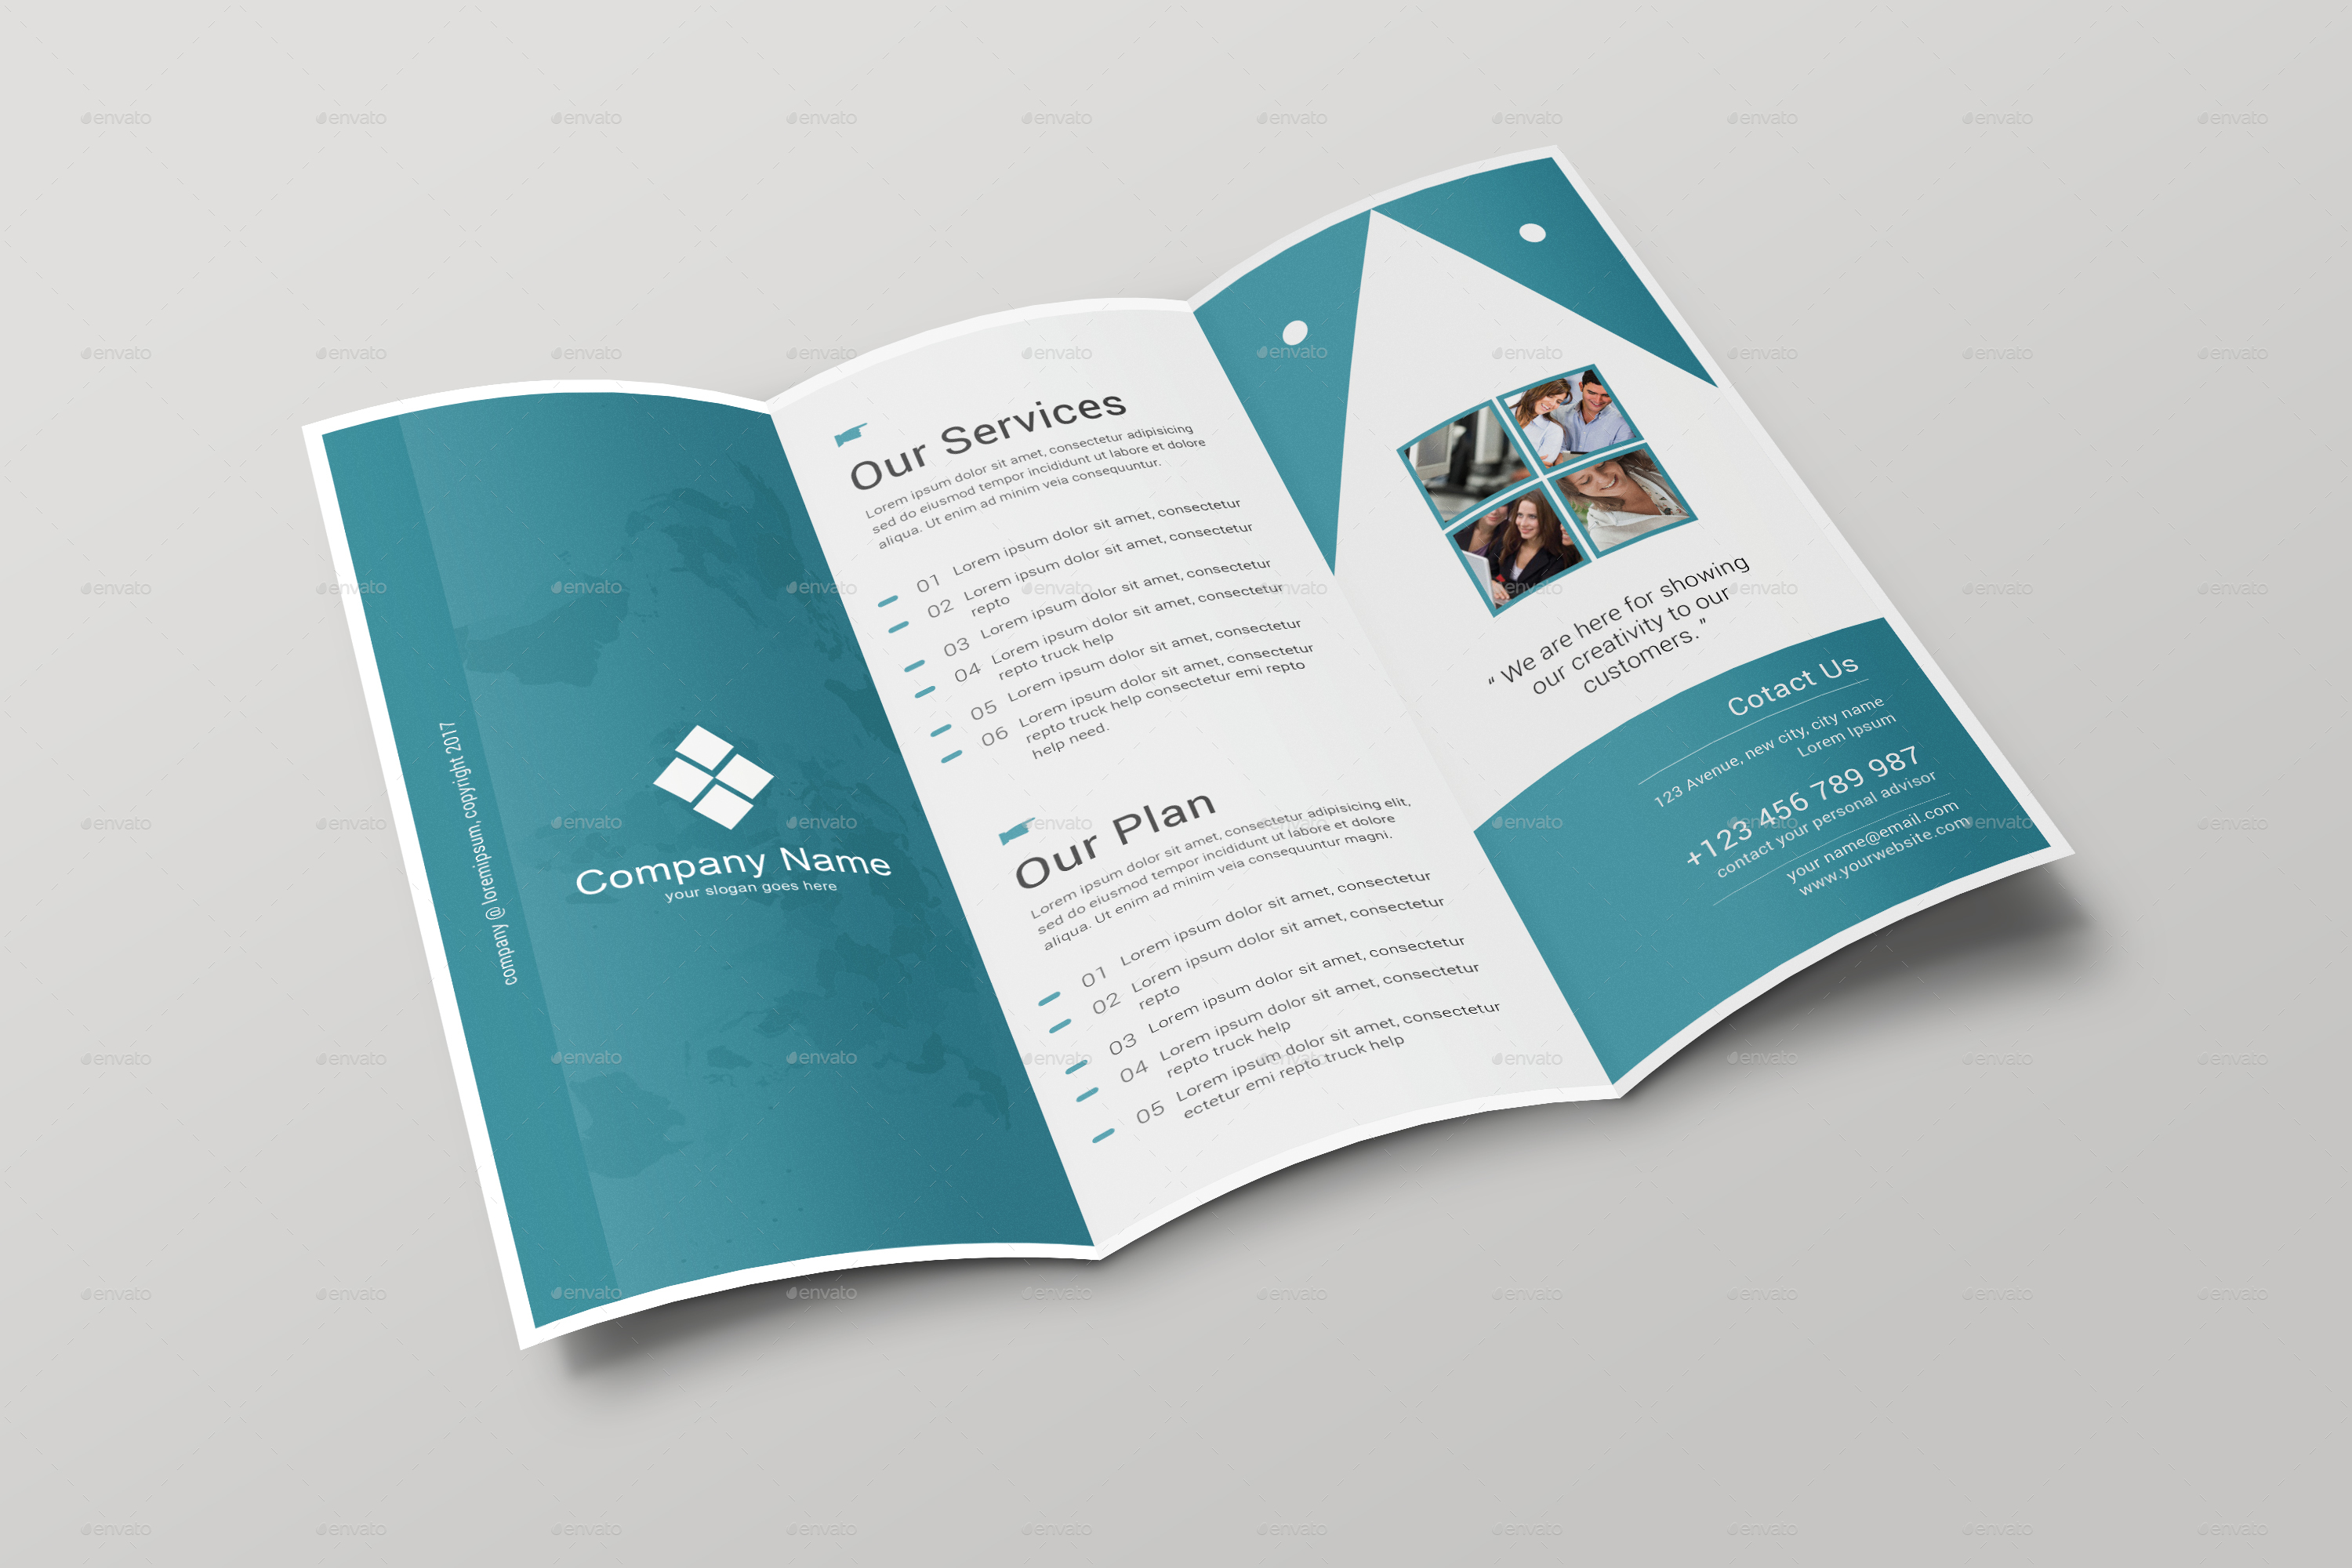 brochure tri fold templates - corporate trifold brochure by arpcreation graphicriver